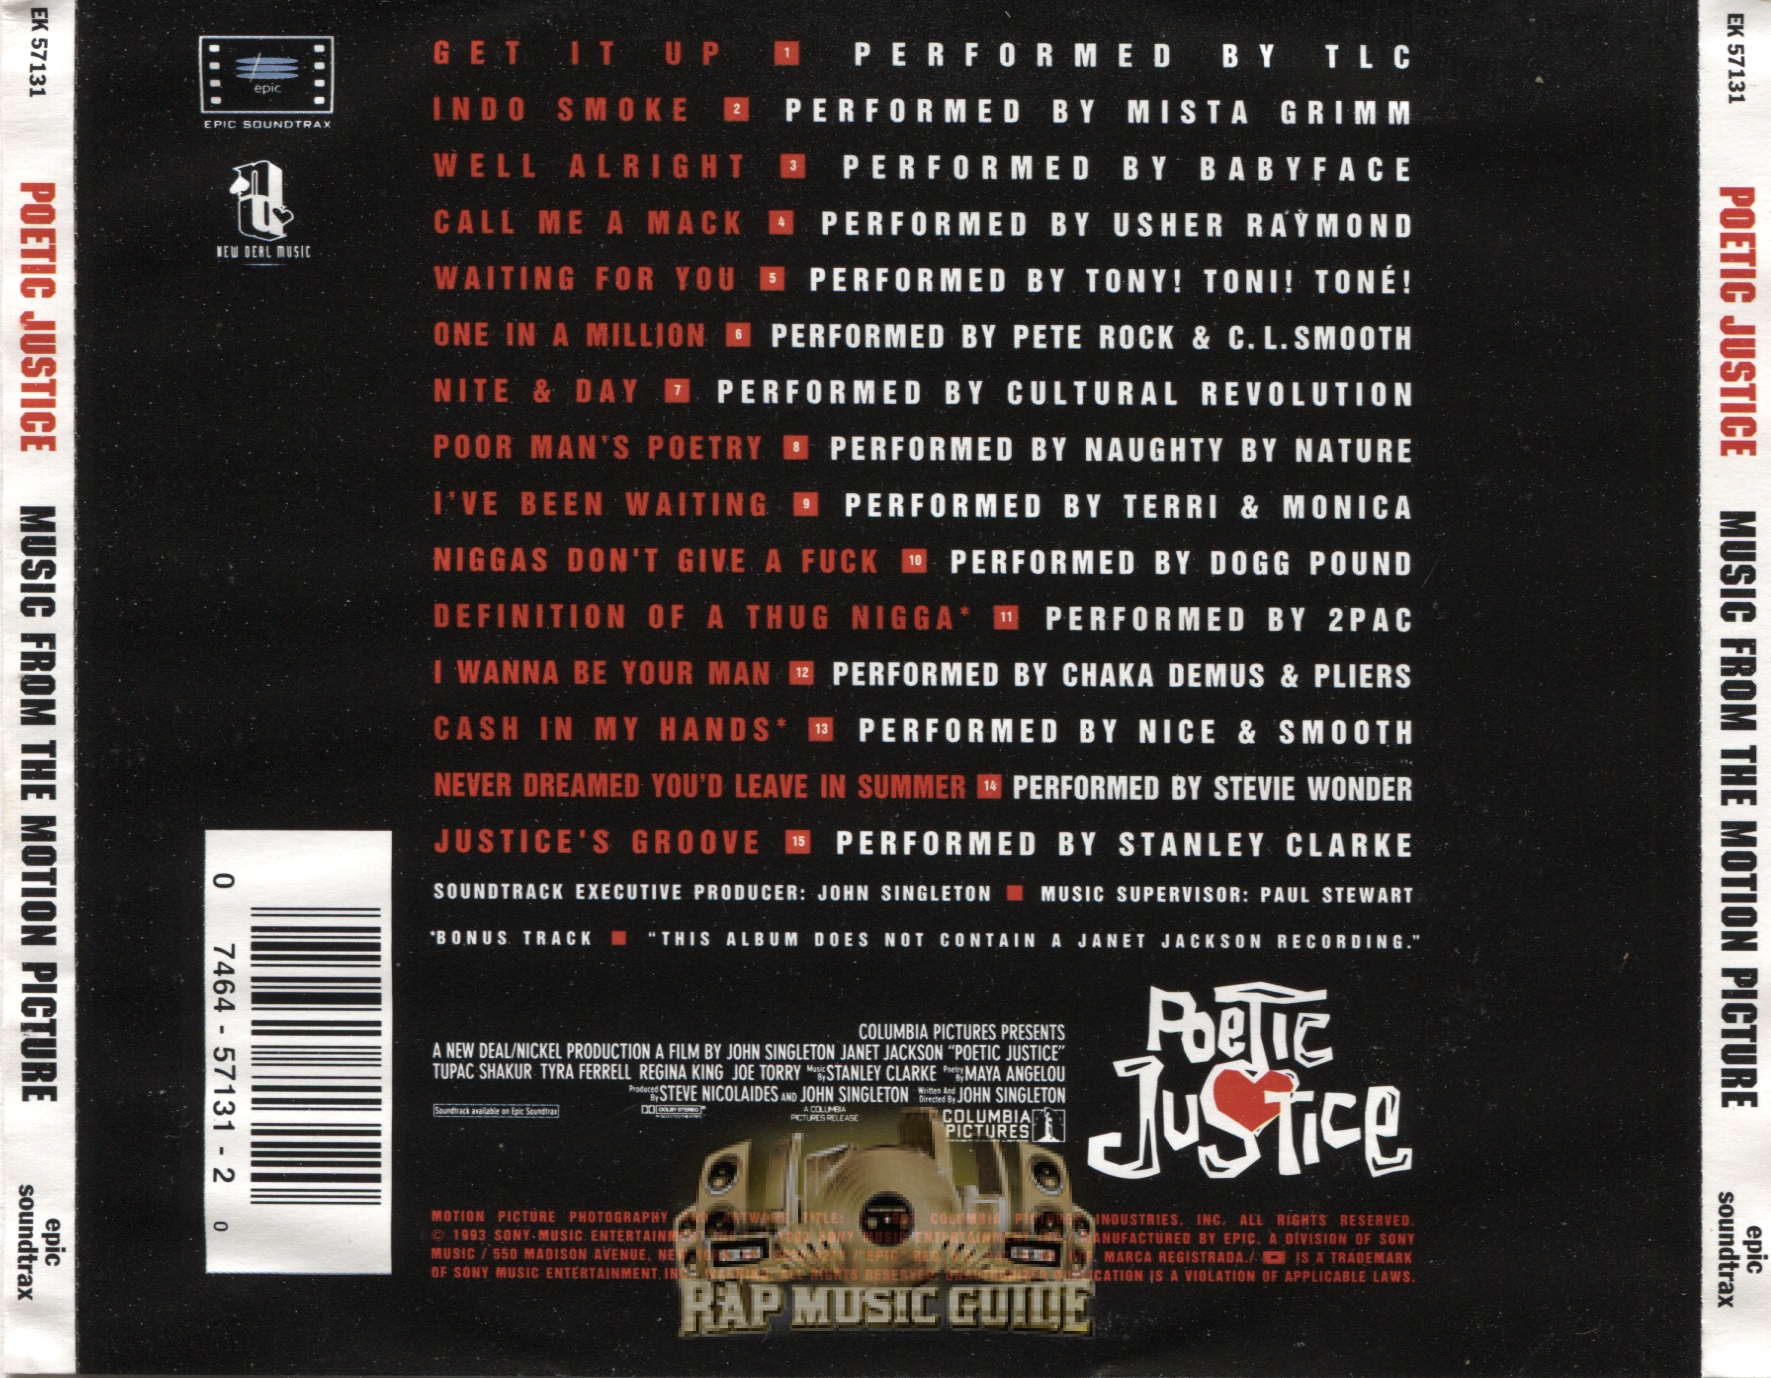 Poetic Justice - Soundtrack rear.jpg